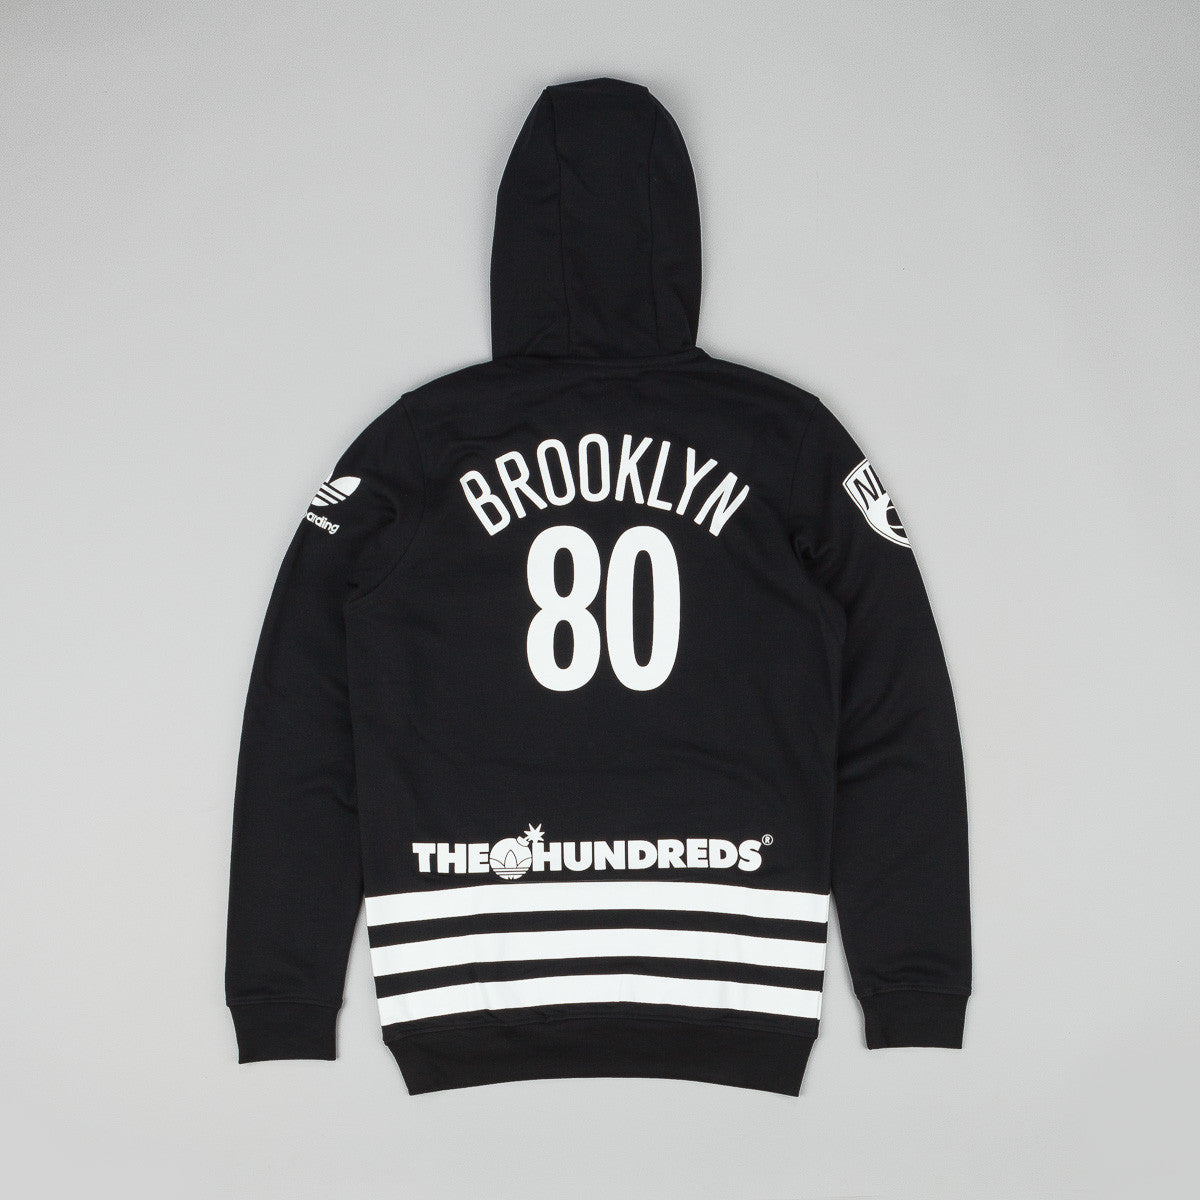 Adidas x NBA x The Hundreds NY Hooded Sweatshirt - Black